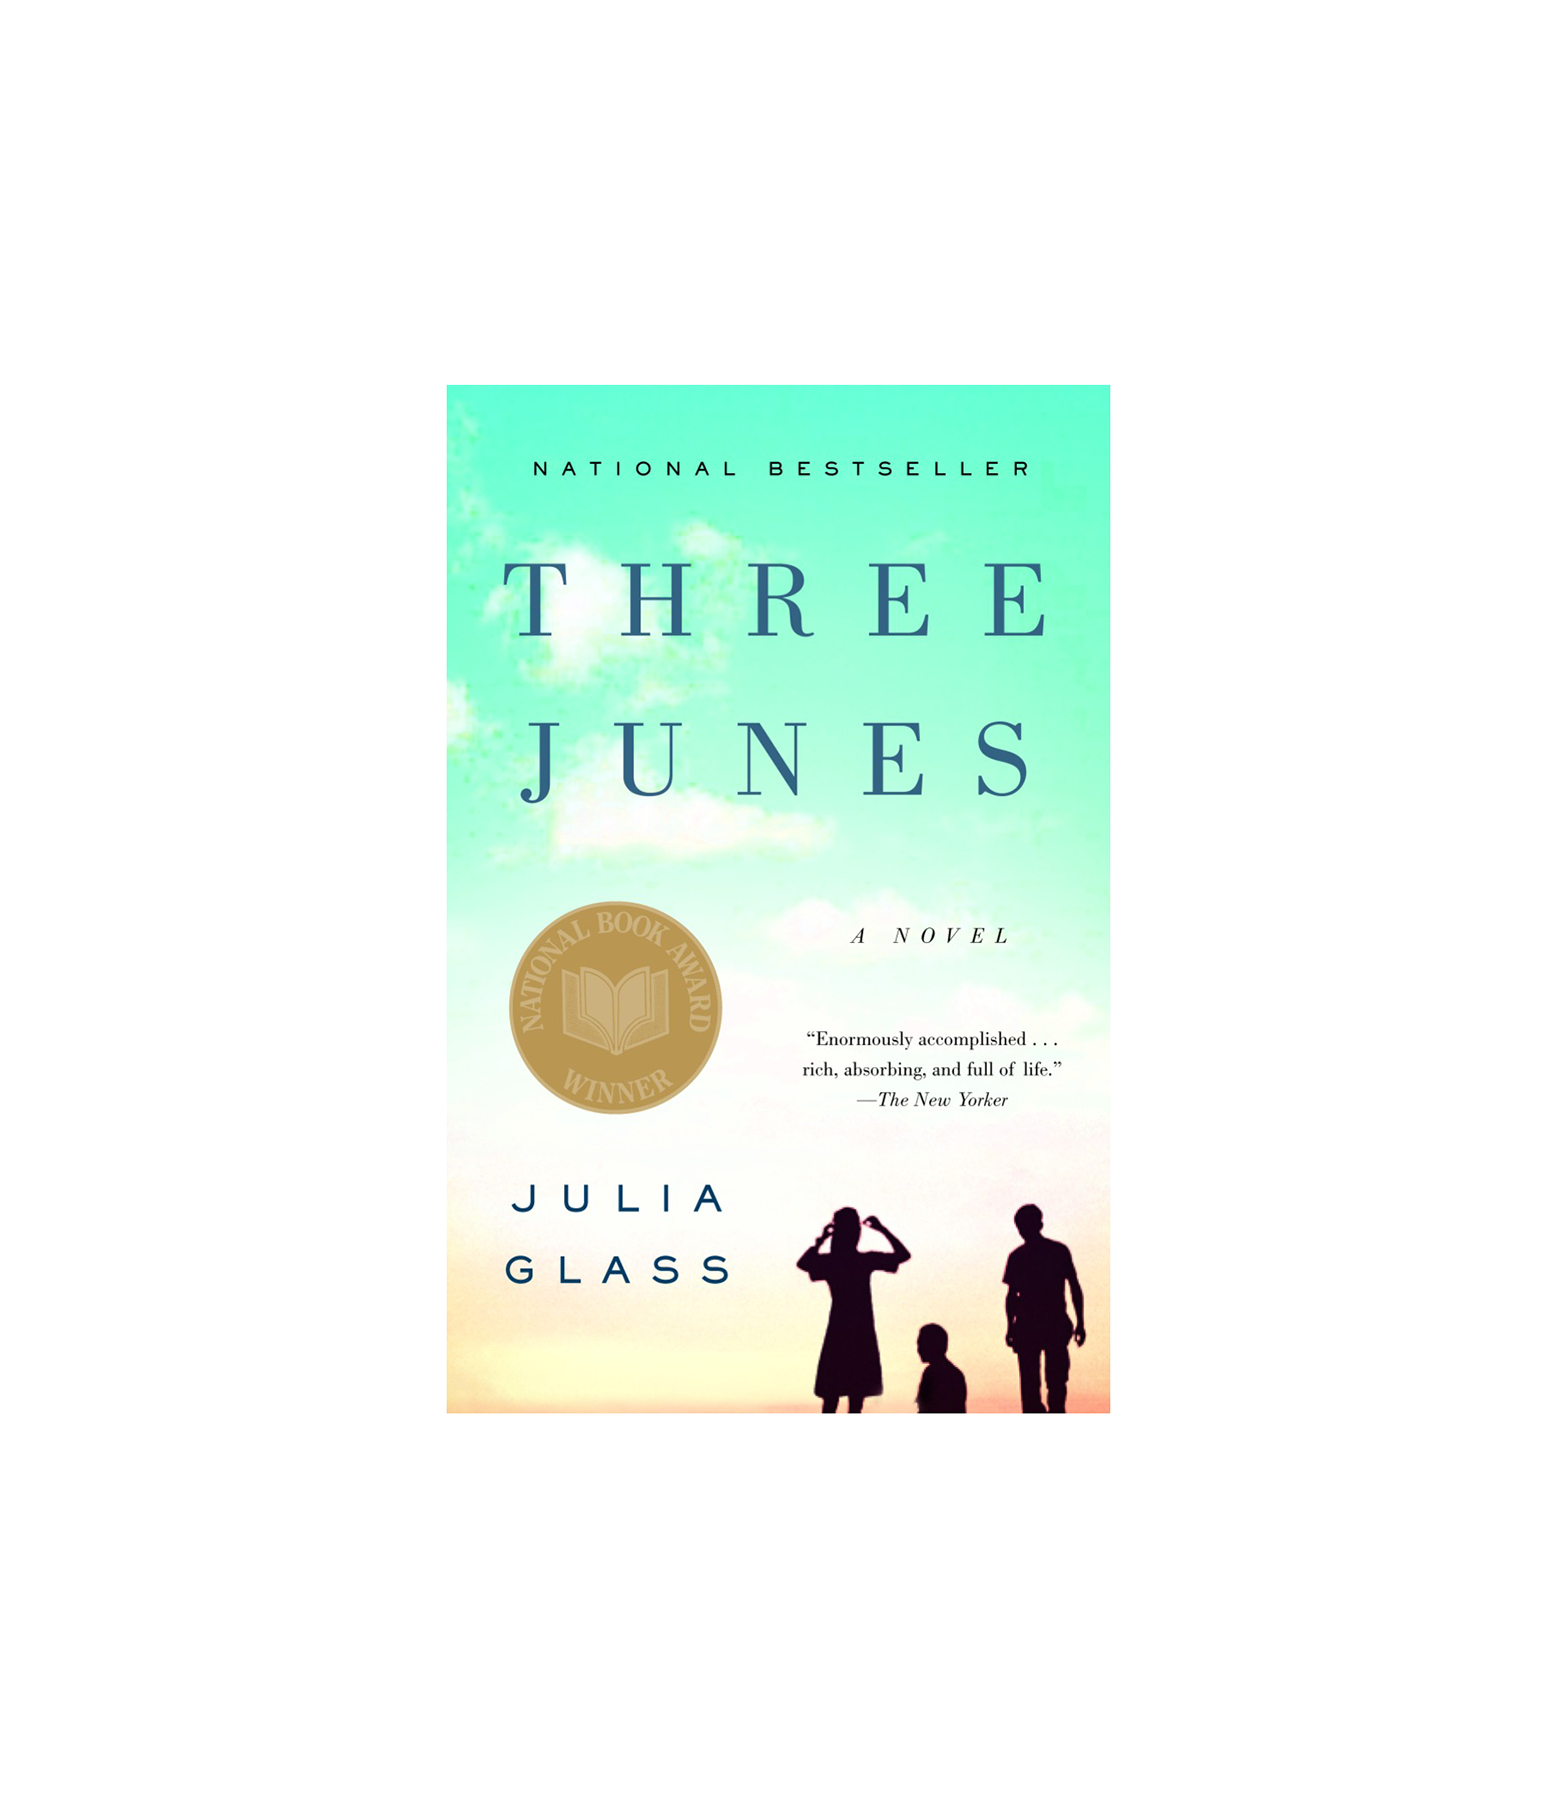 Three Junes, by Julia Glass